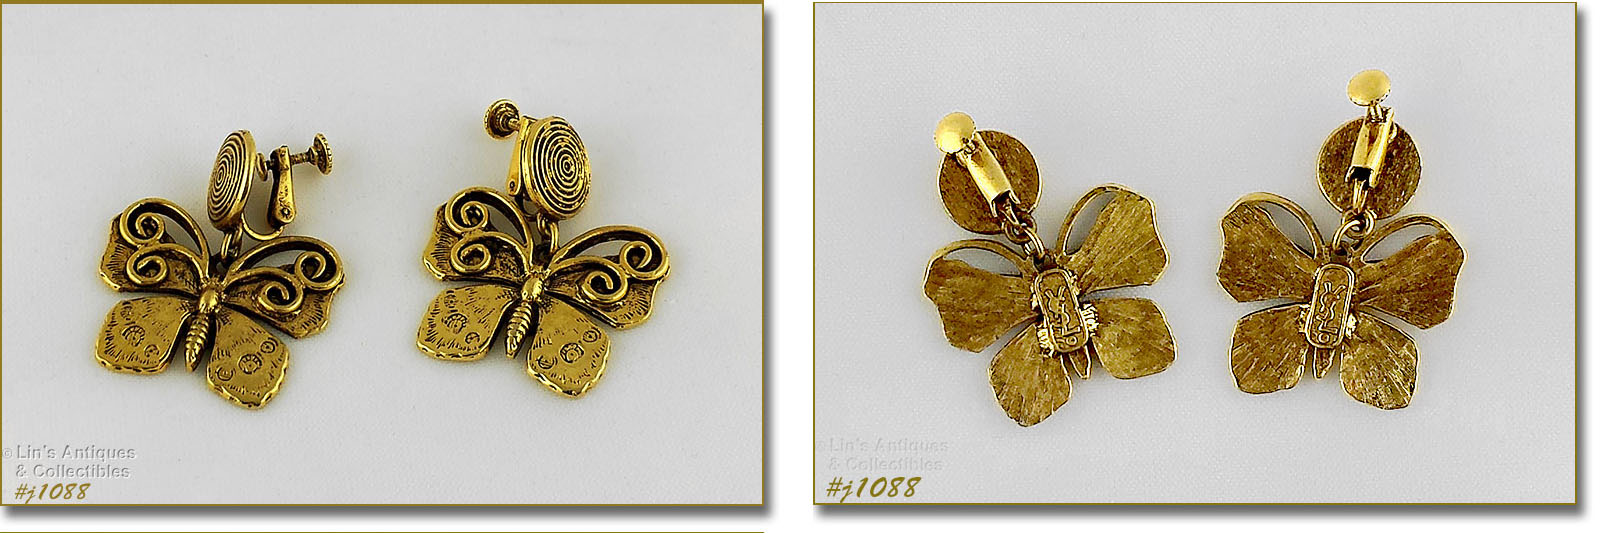 b6b4a311196 THIS LISTING HAS YVES SAINT LAURENT VINTAGE EARRINGS! THEY'RE GOLD-TONE AND  MEASURE 1 1/2